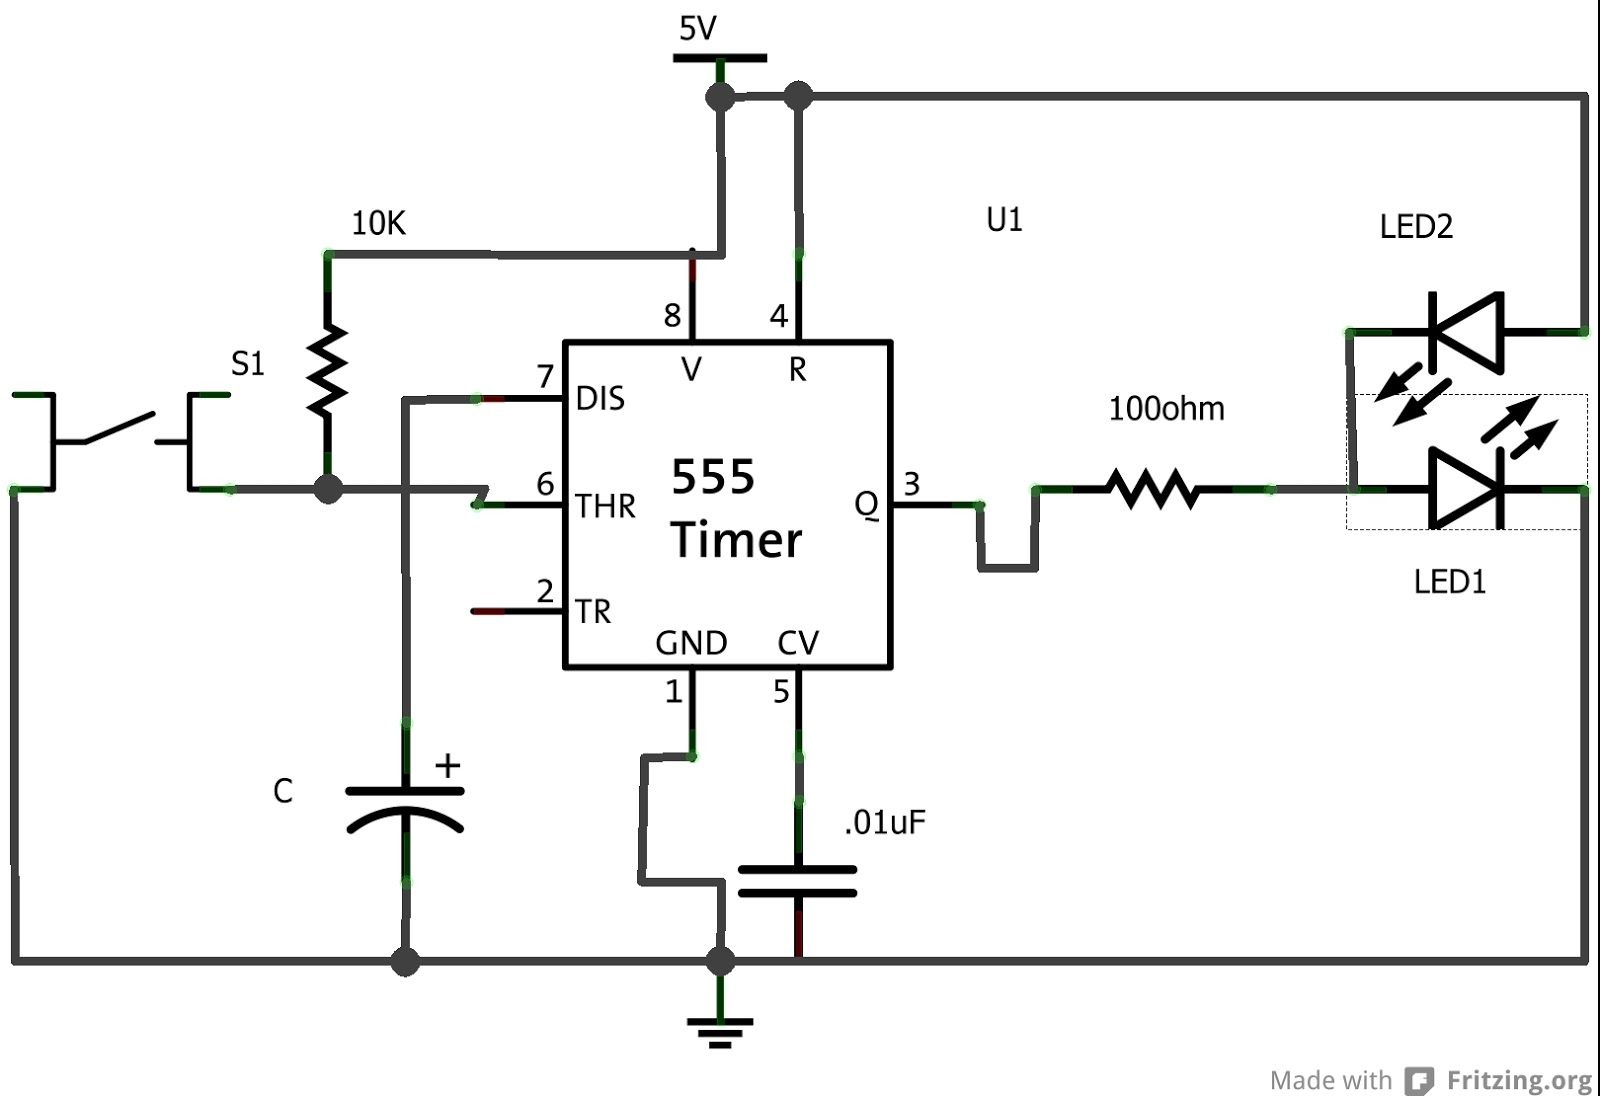 Application Of 555 Timer In Astable Mode